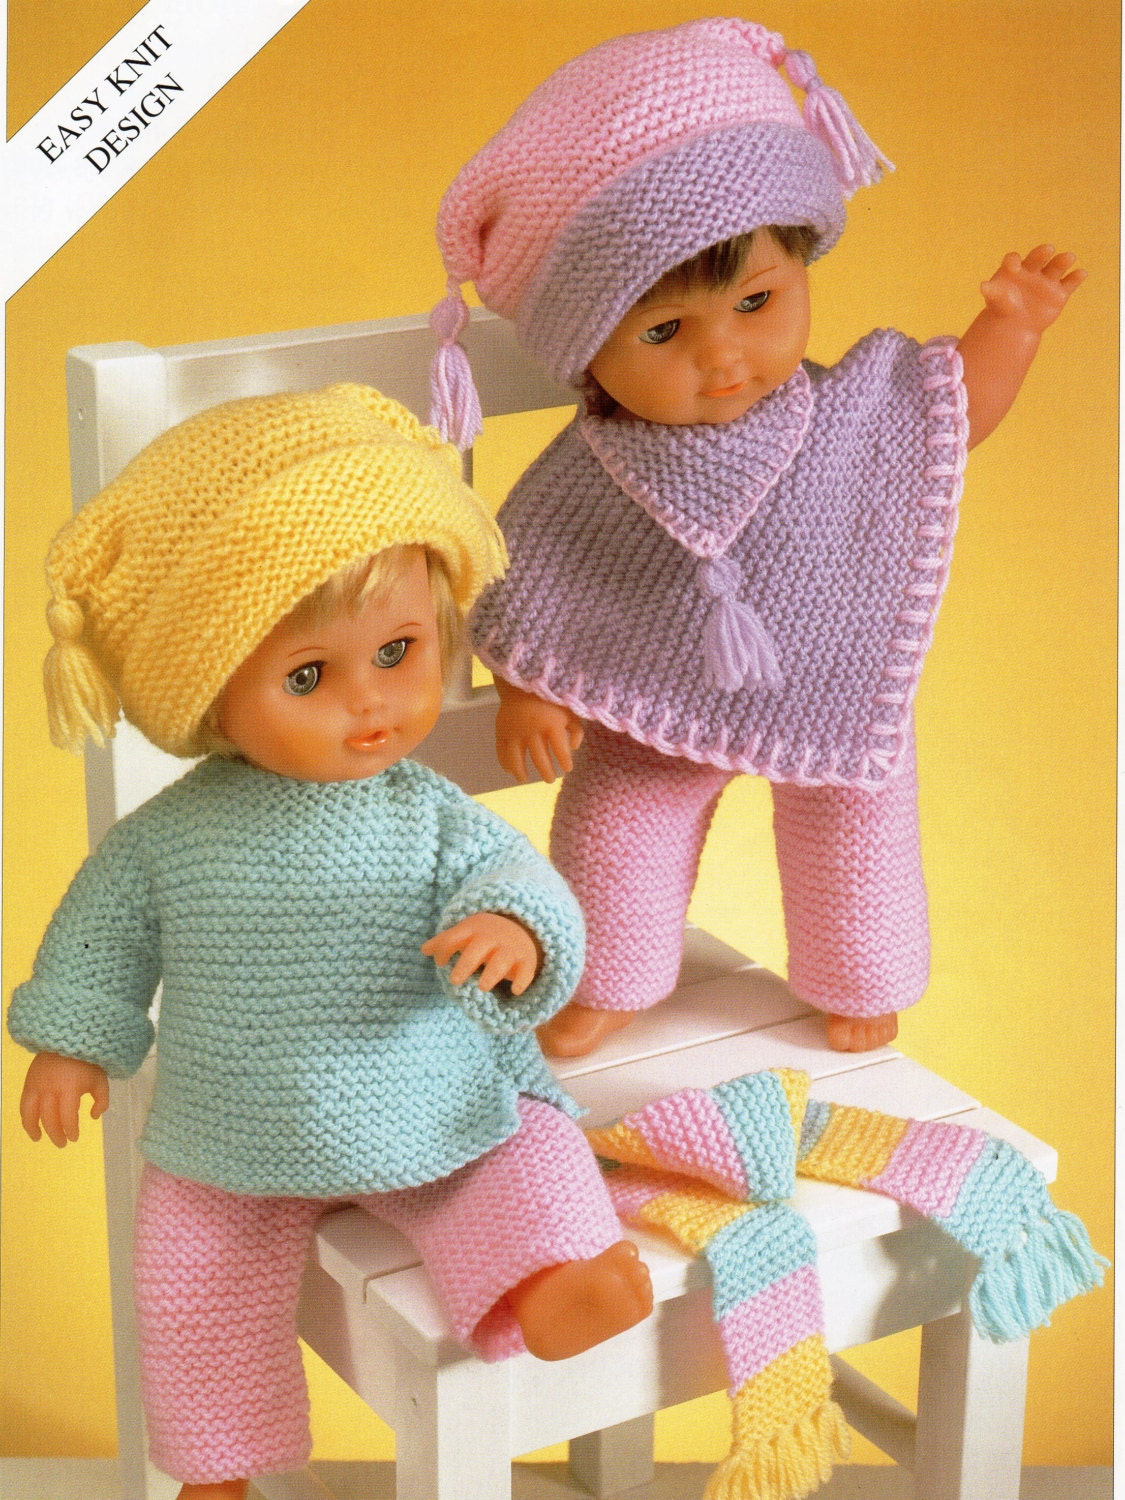 Knitting Pattern For Dolls Poncho : Baby Dolls Knitting Pattern Baby Dolls Set trouser suit poncho